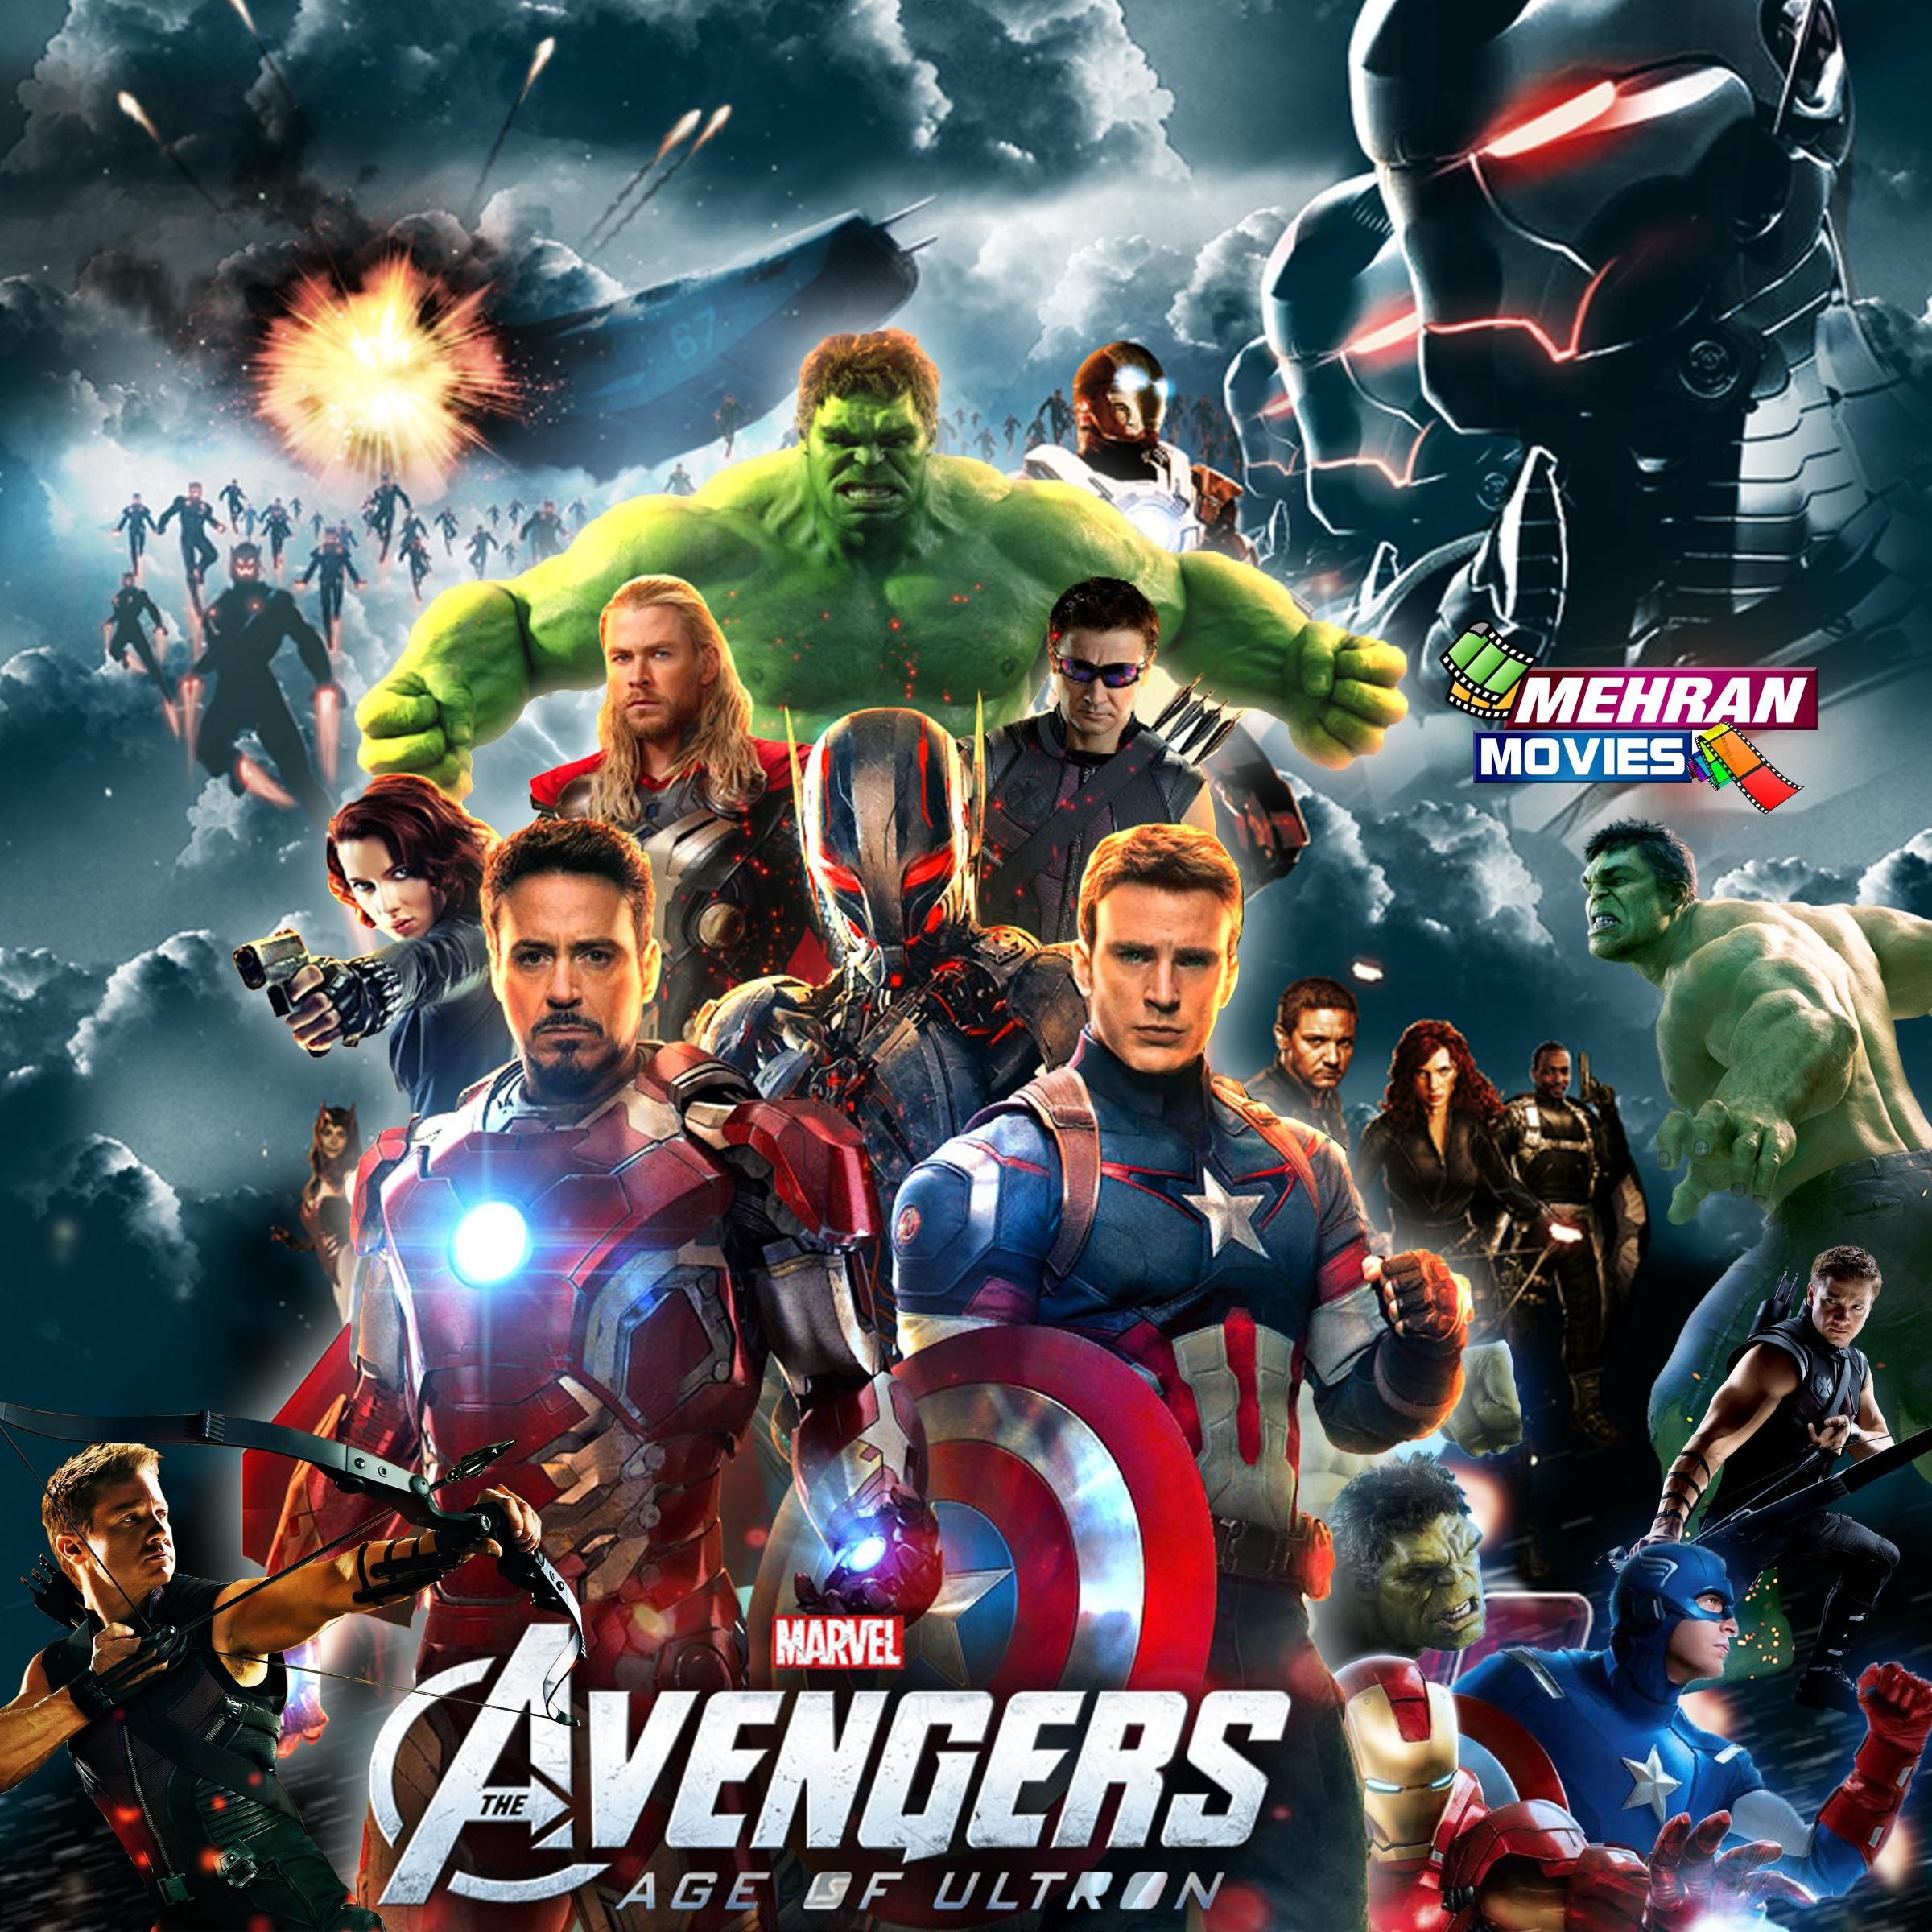 The Avengers Age Of Ultron Movie Hd Poster 2014 2015